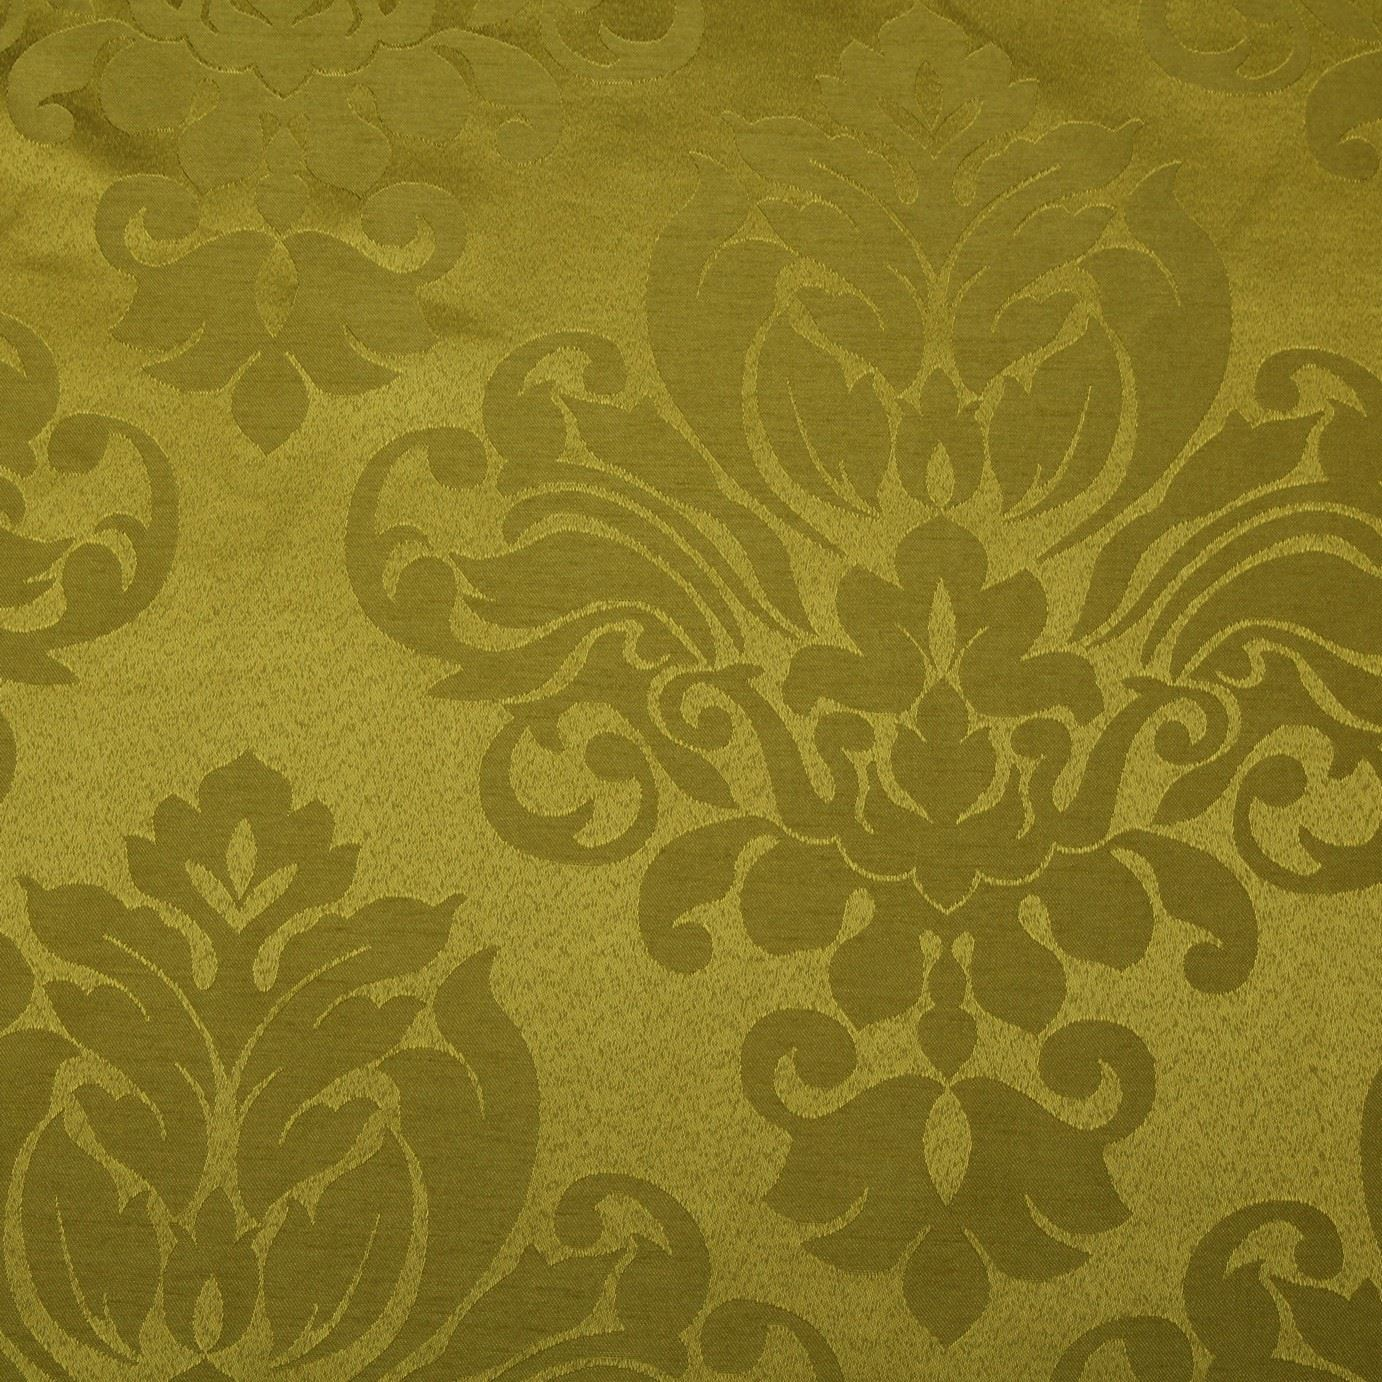 CLASSIC FLORAL FAUX SILK JACQUARD CURTAIN UPHOLSTERY FABRIC - 12 ...